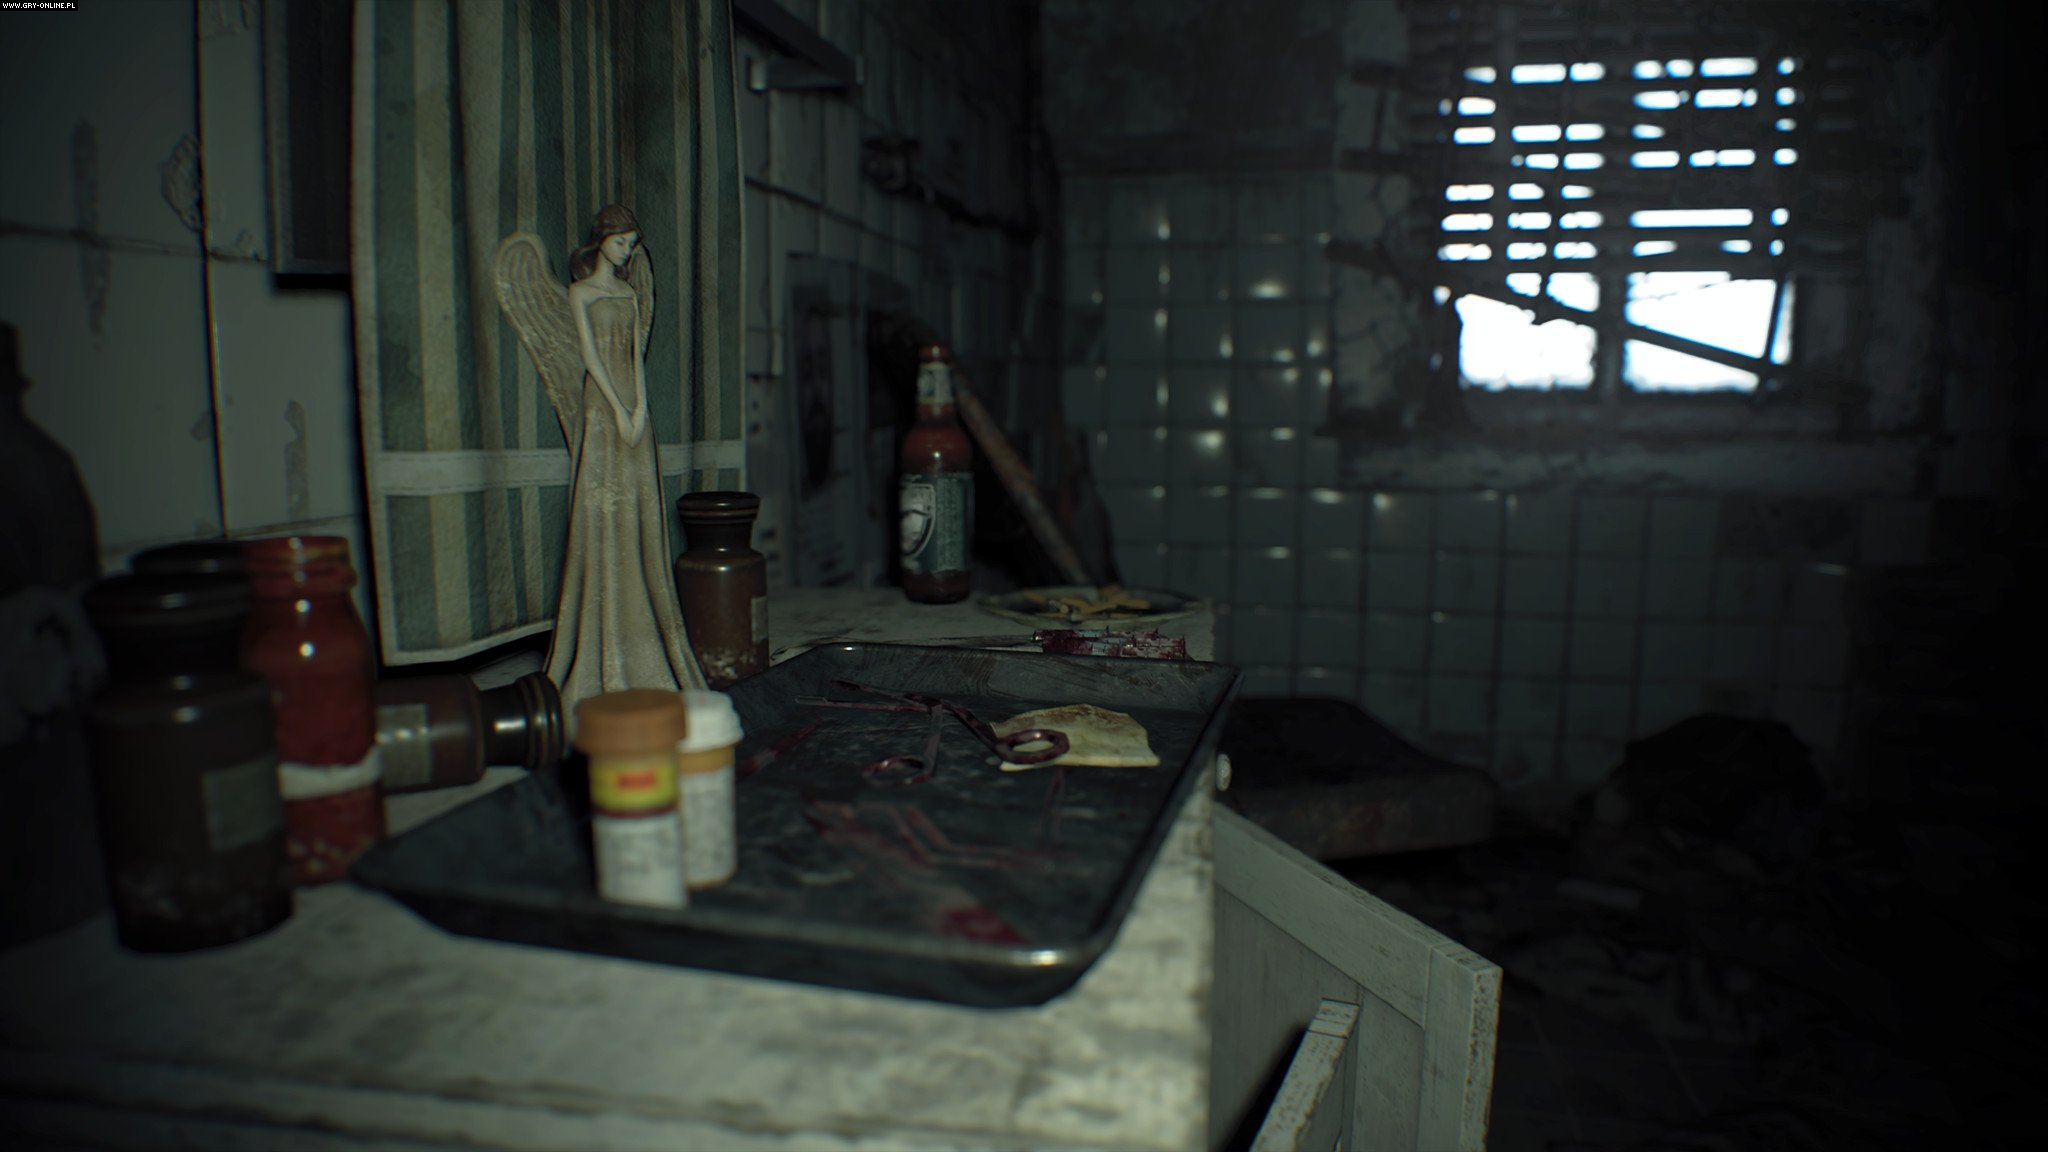 Resident Evil VII: Biohazard PC, PS4, XONE Games Image 45/100, Capcom